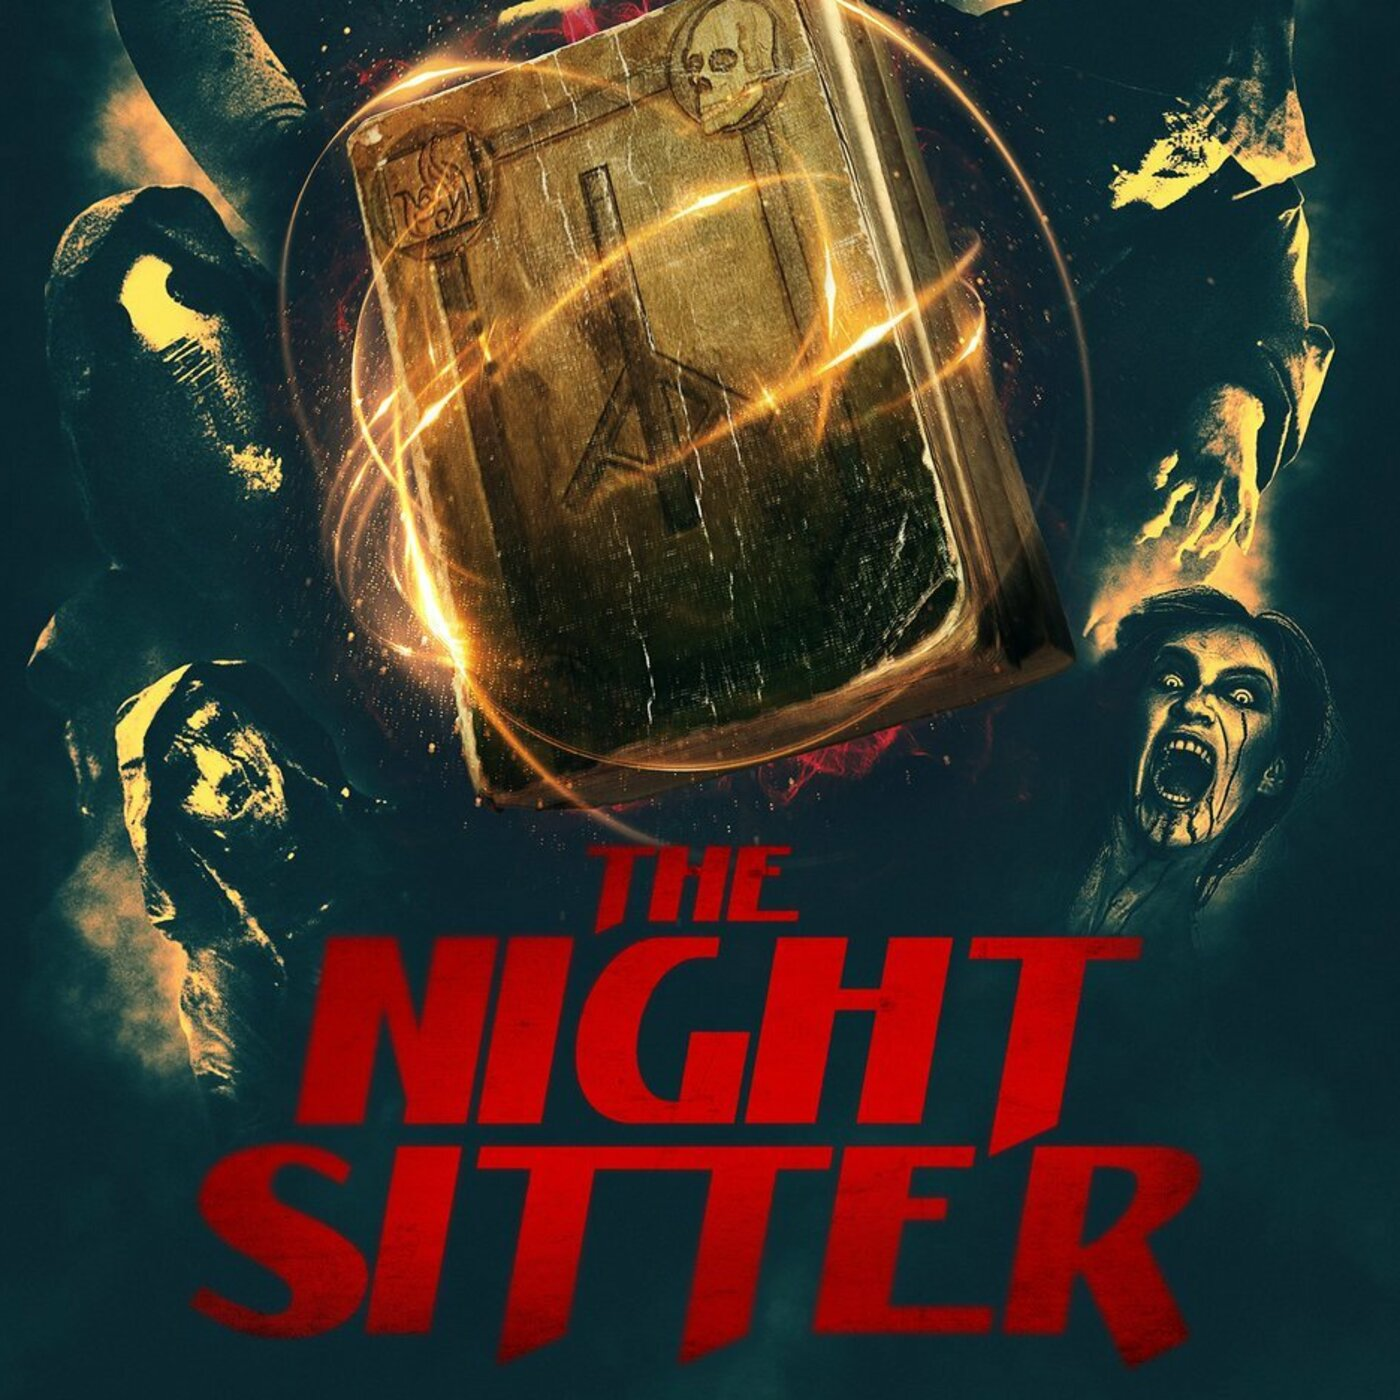 The Night Sitter And Four Other Movies From The Basement podcast